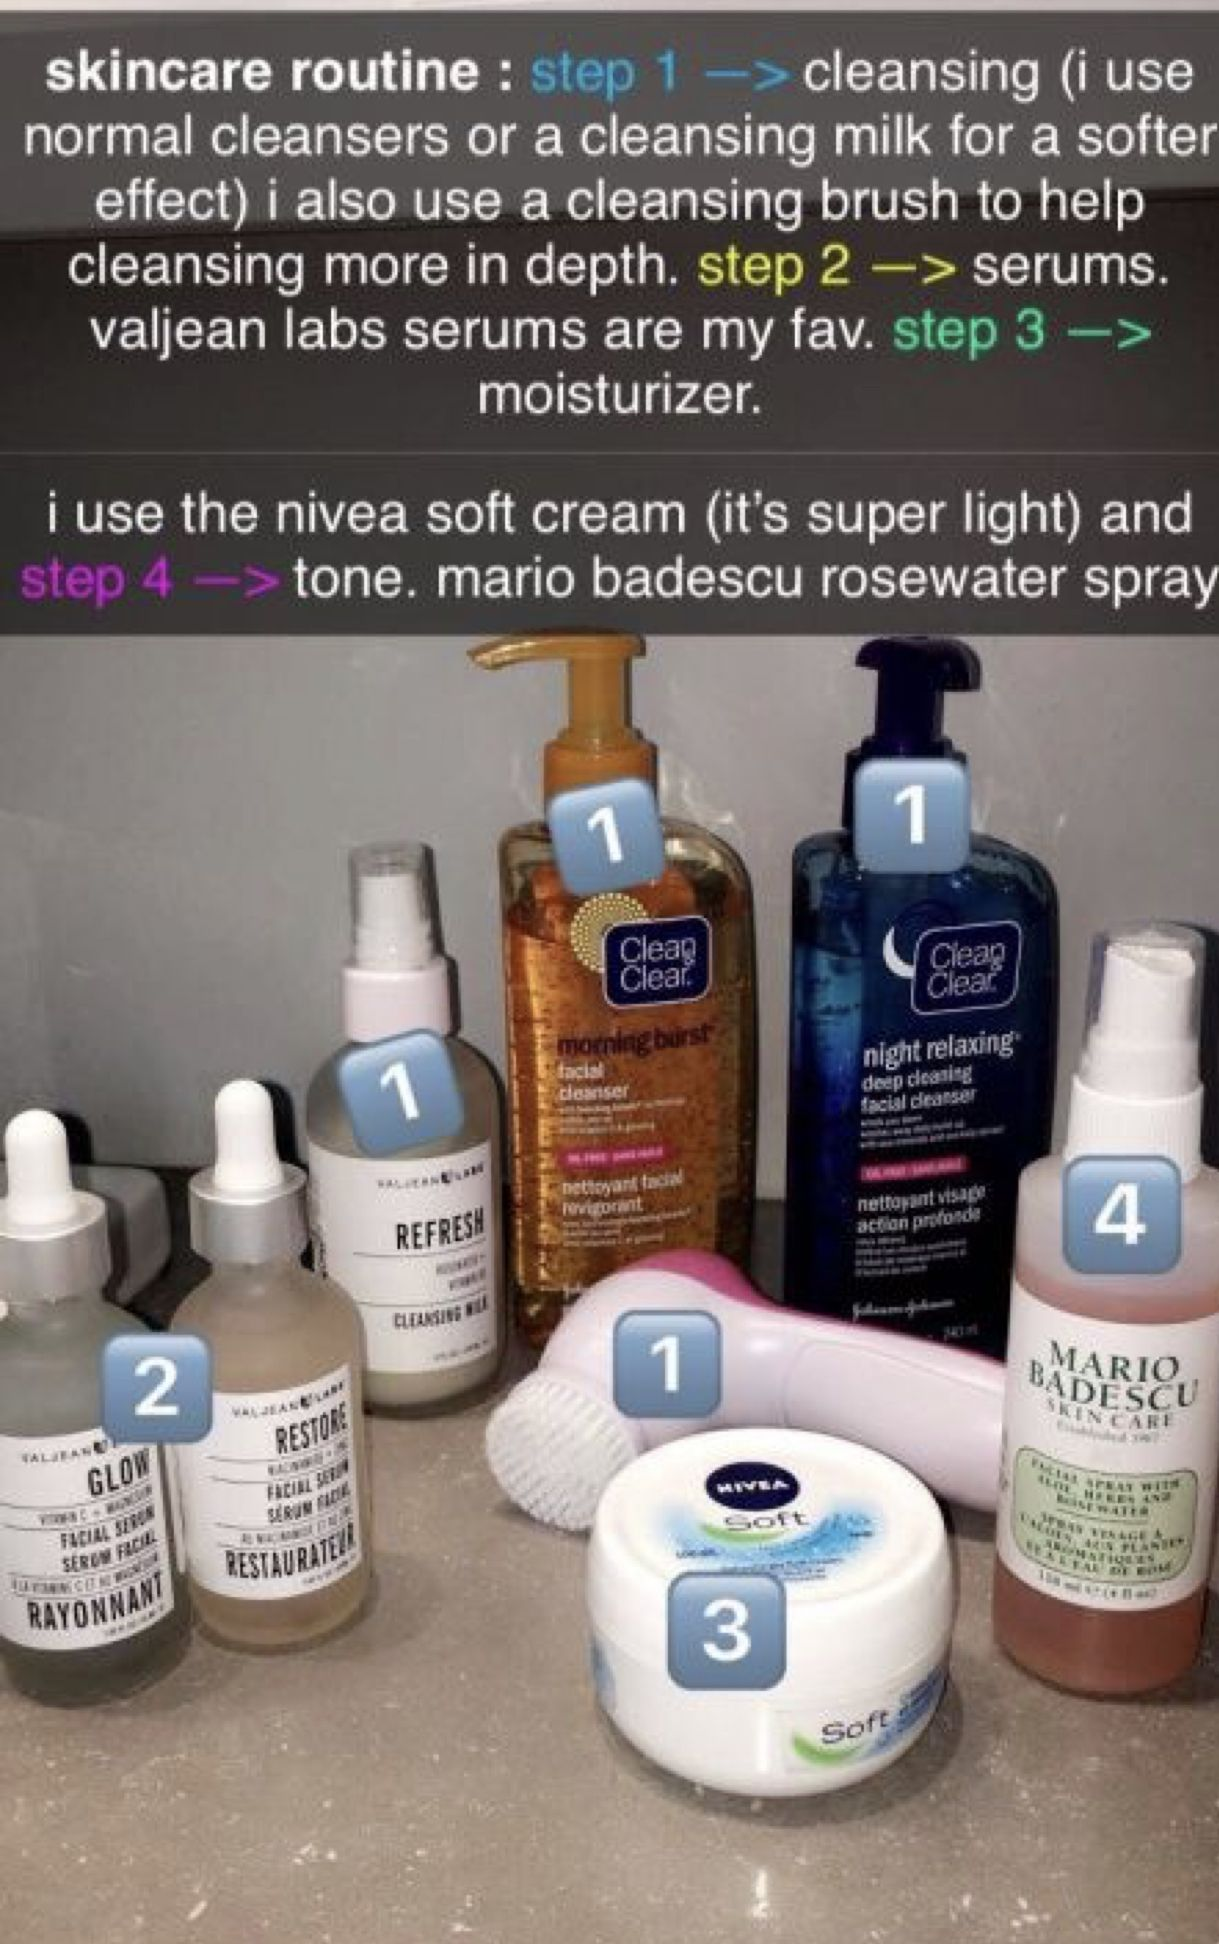 Pin by 🦋 on self & skin care Skin care routine steps